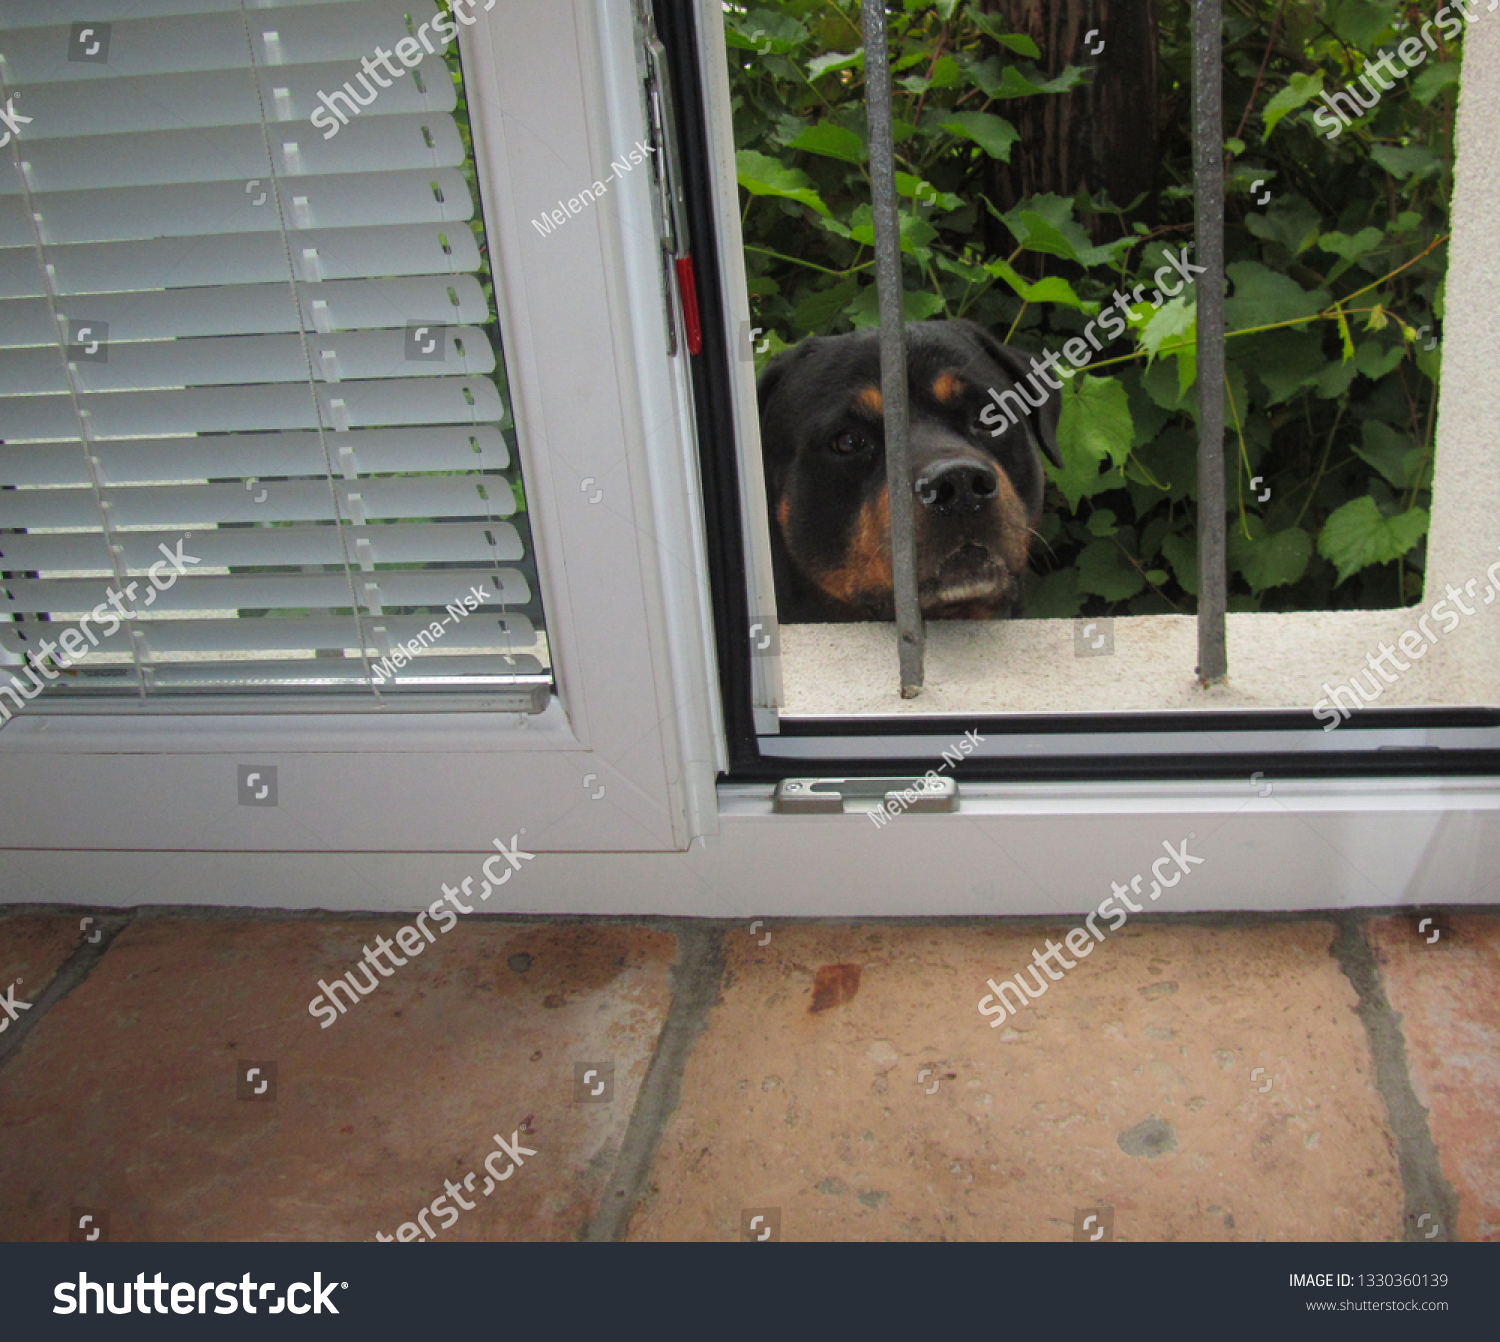 A sad eyed rottweiler dog peeks out of a garden window through the bars